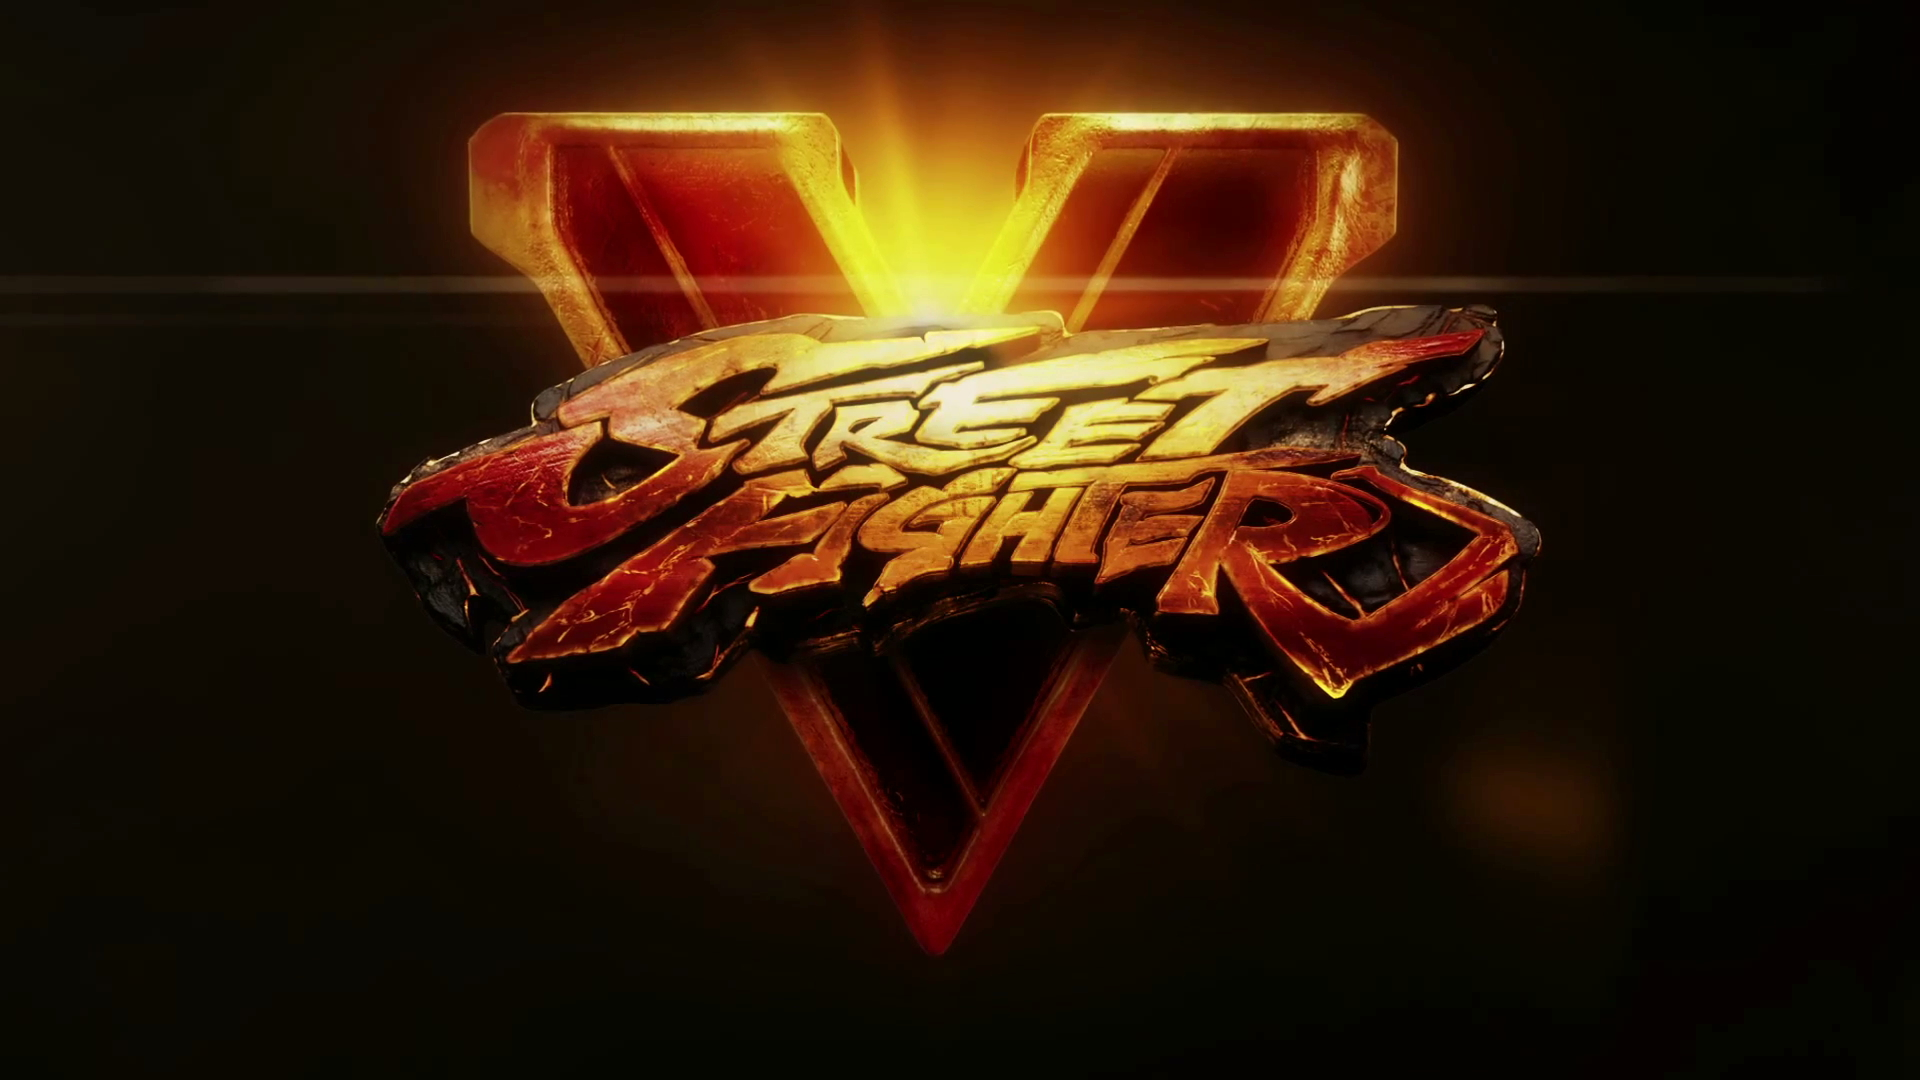 Street Fighter V Hd Wallpaper Background Image 1920x1080 Id